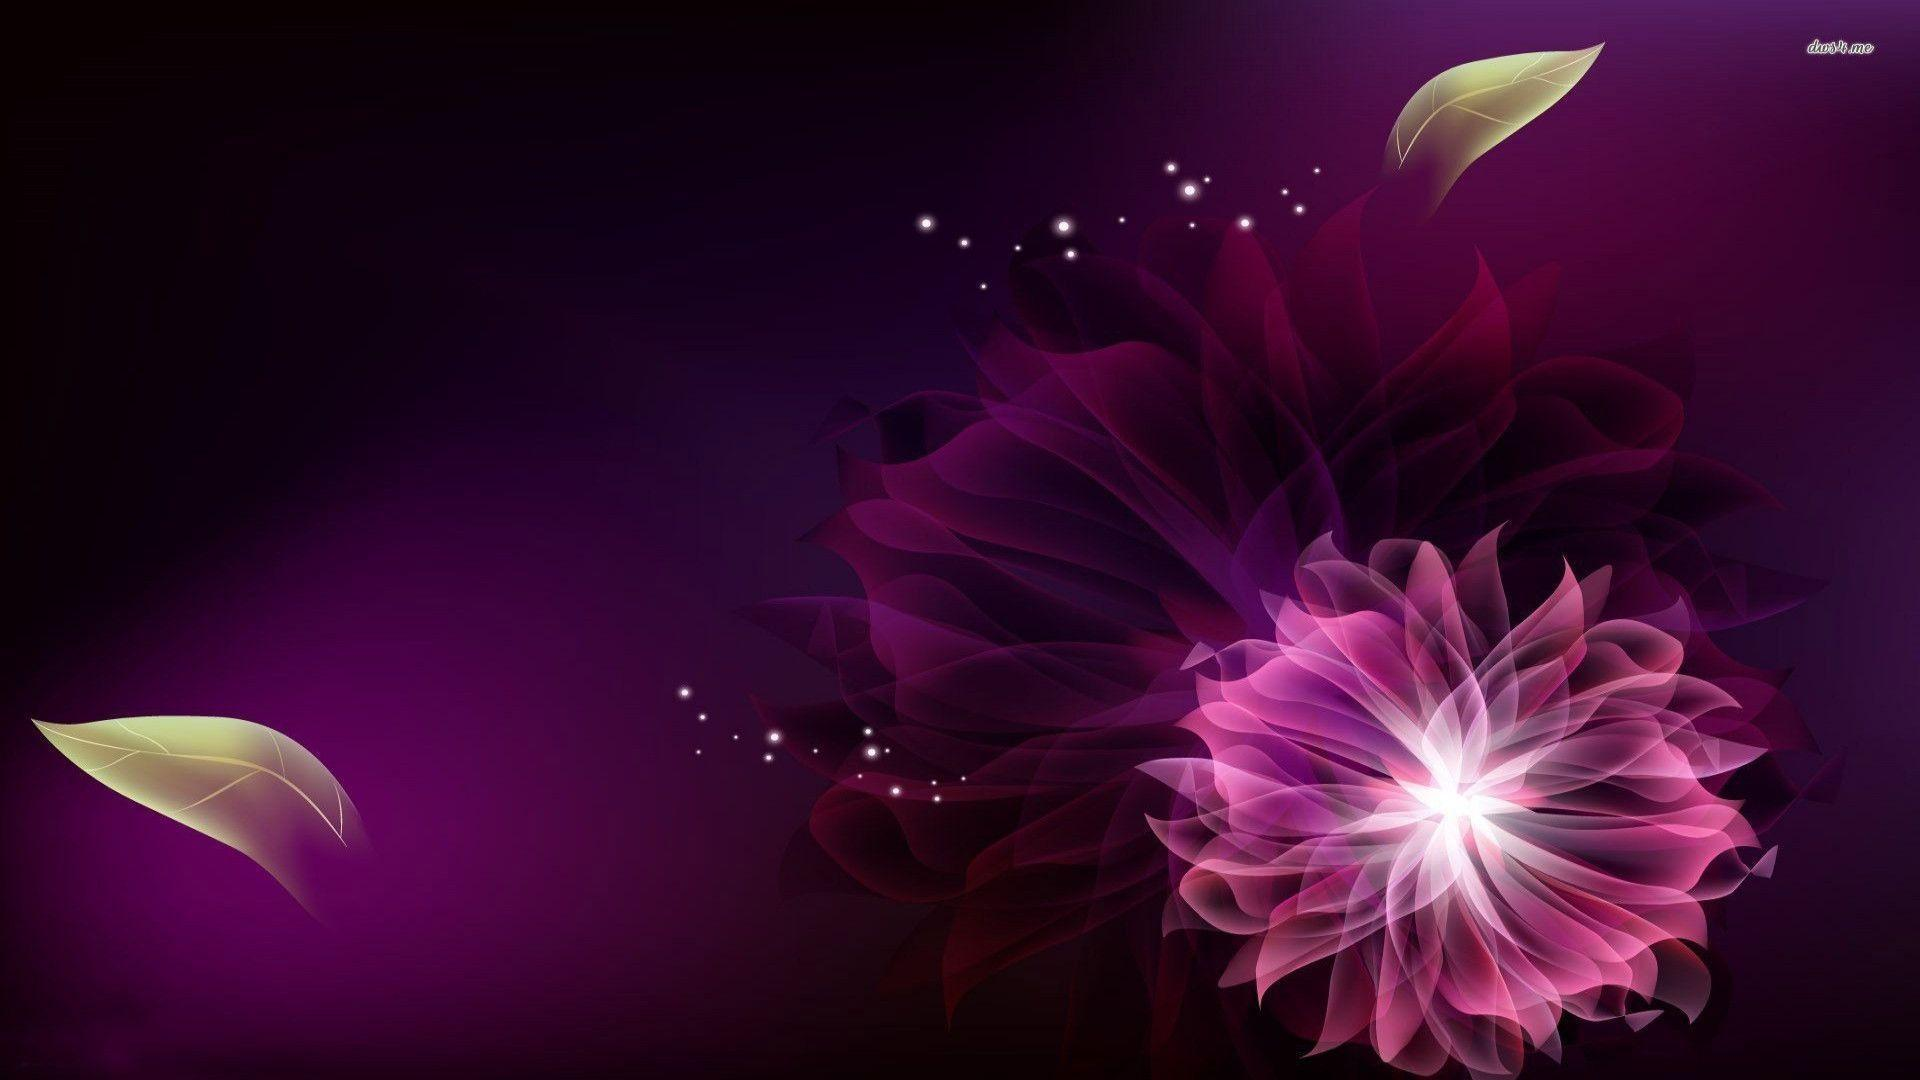 Dark Flower Wallpapers - Wallpaper Cave